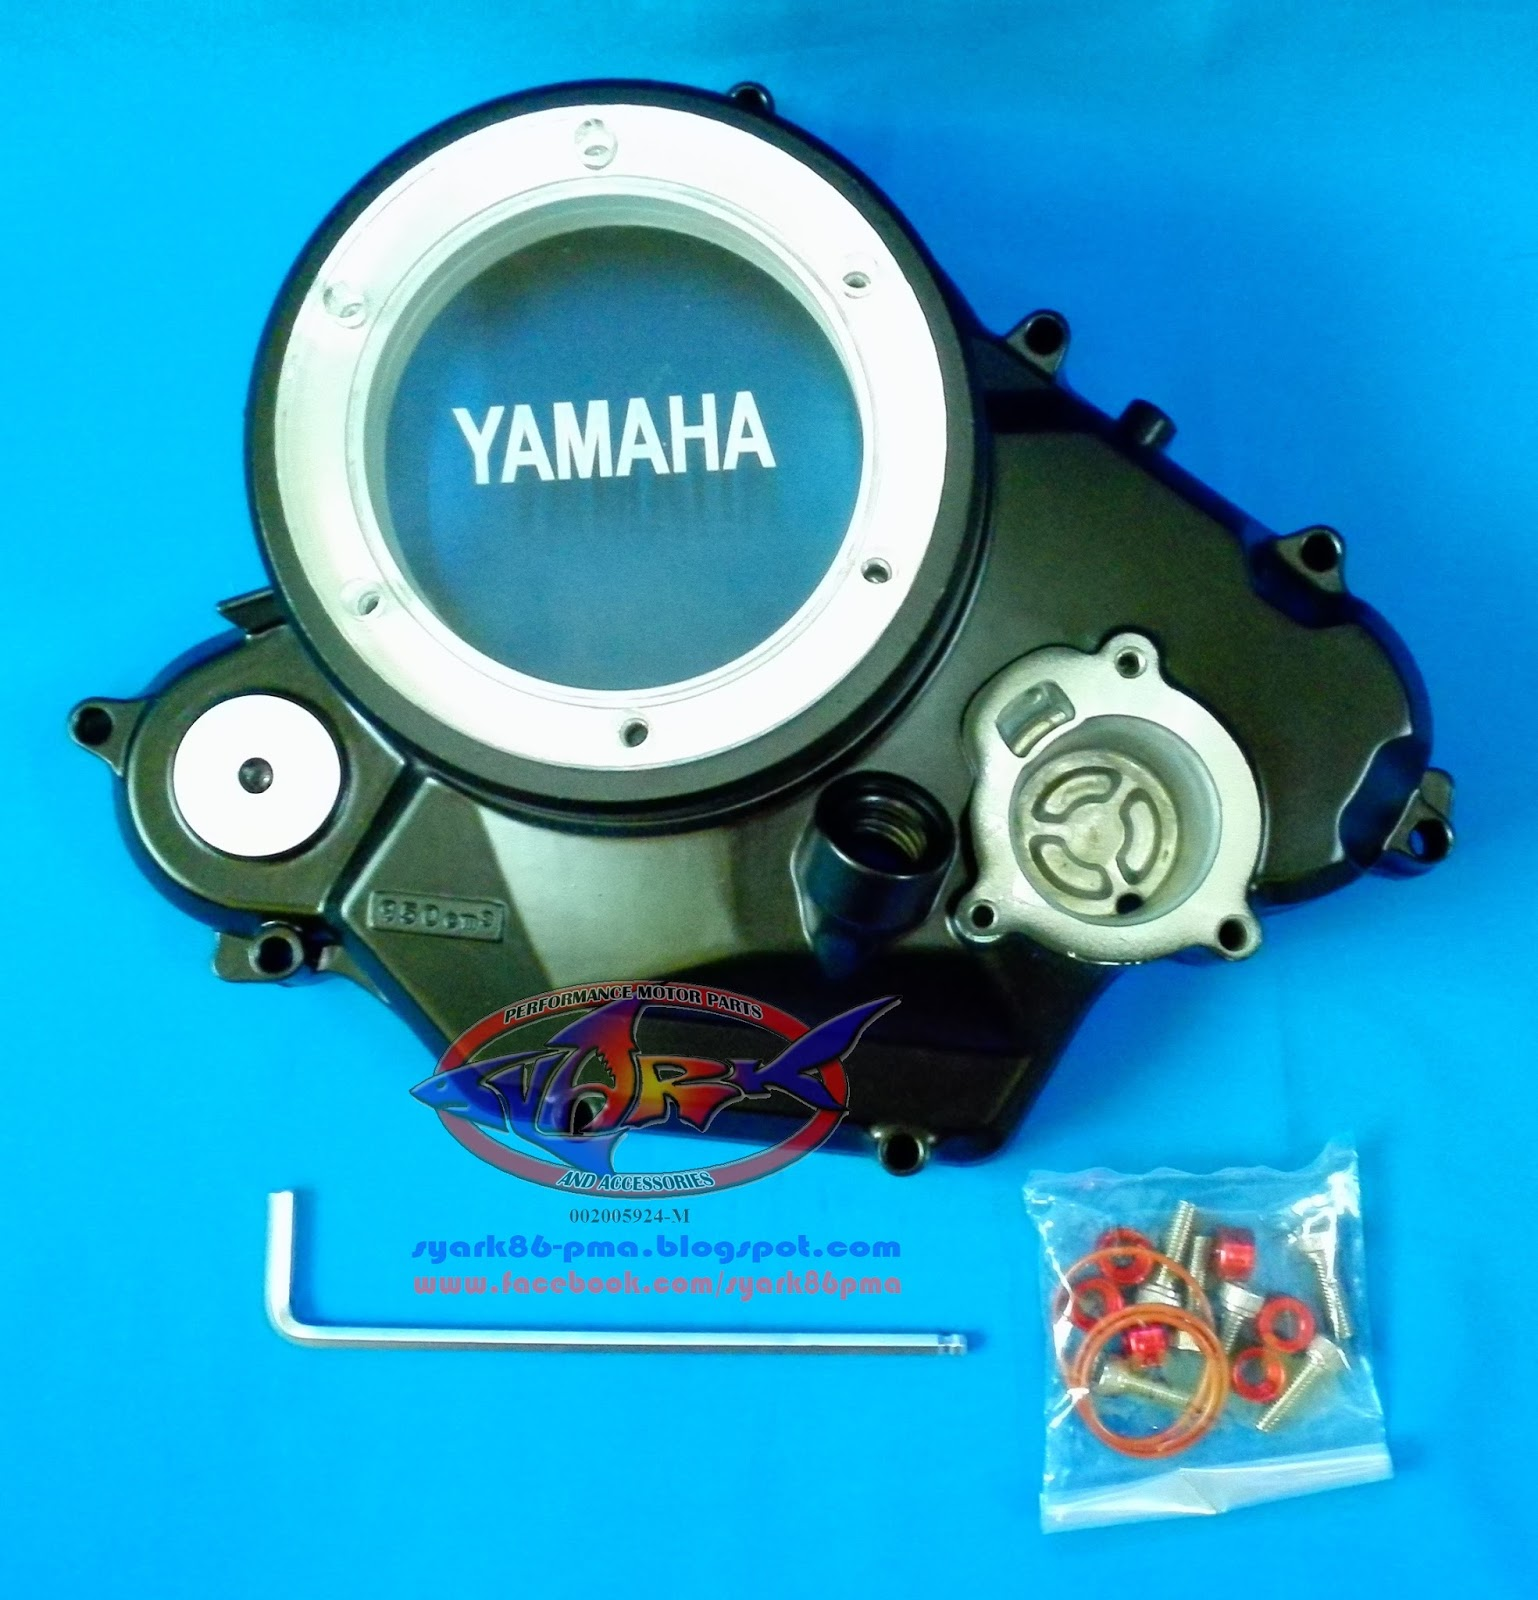 Syark Performance Motor Parts Amp Accessories Online Shop